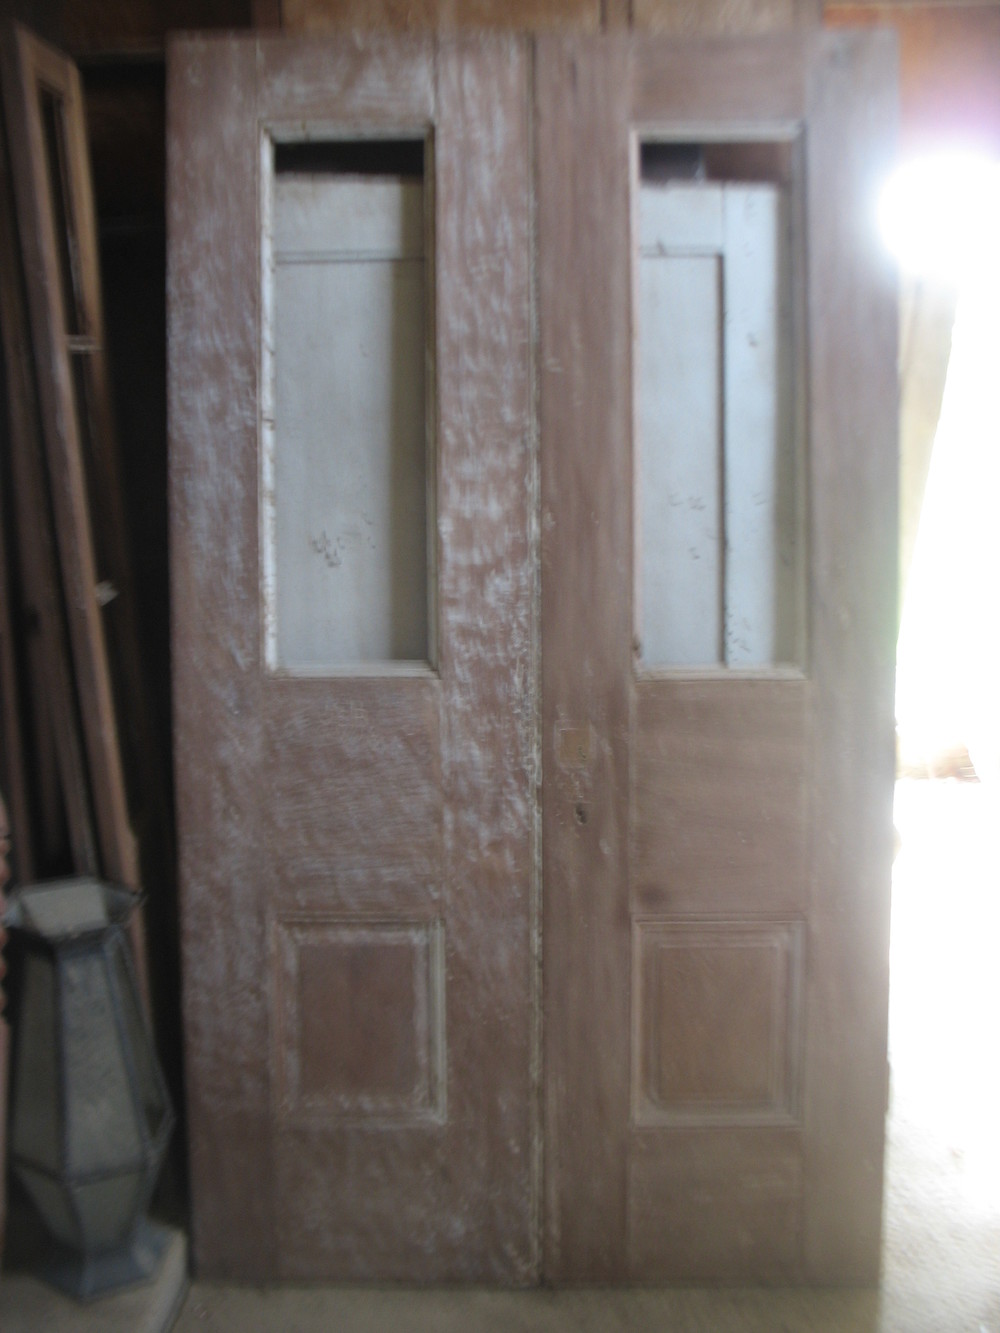 Pair of wonderful 1800's poplar doors with inserts for either beveled glass or stained glass.  Great Entrance Doors or into any special room in your house. They measure 10 feet tall and 6 feet wide.